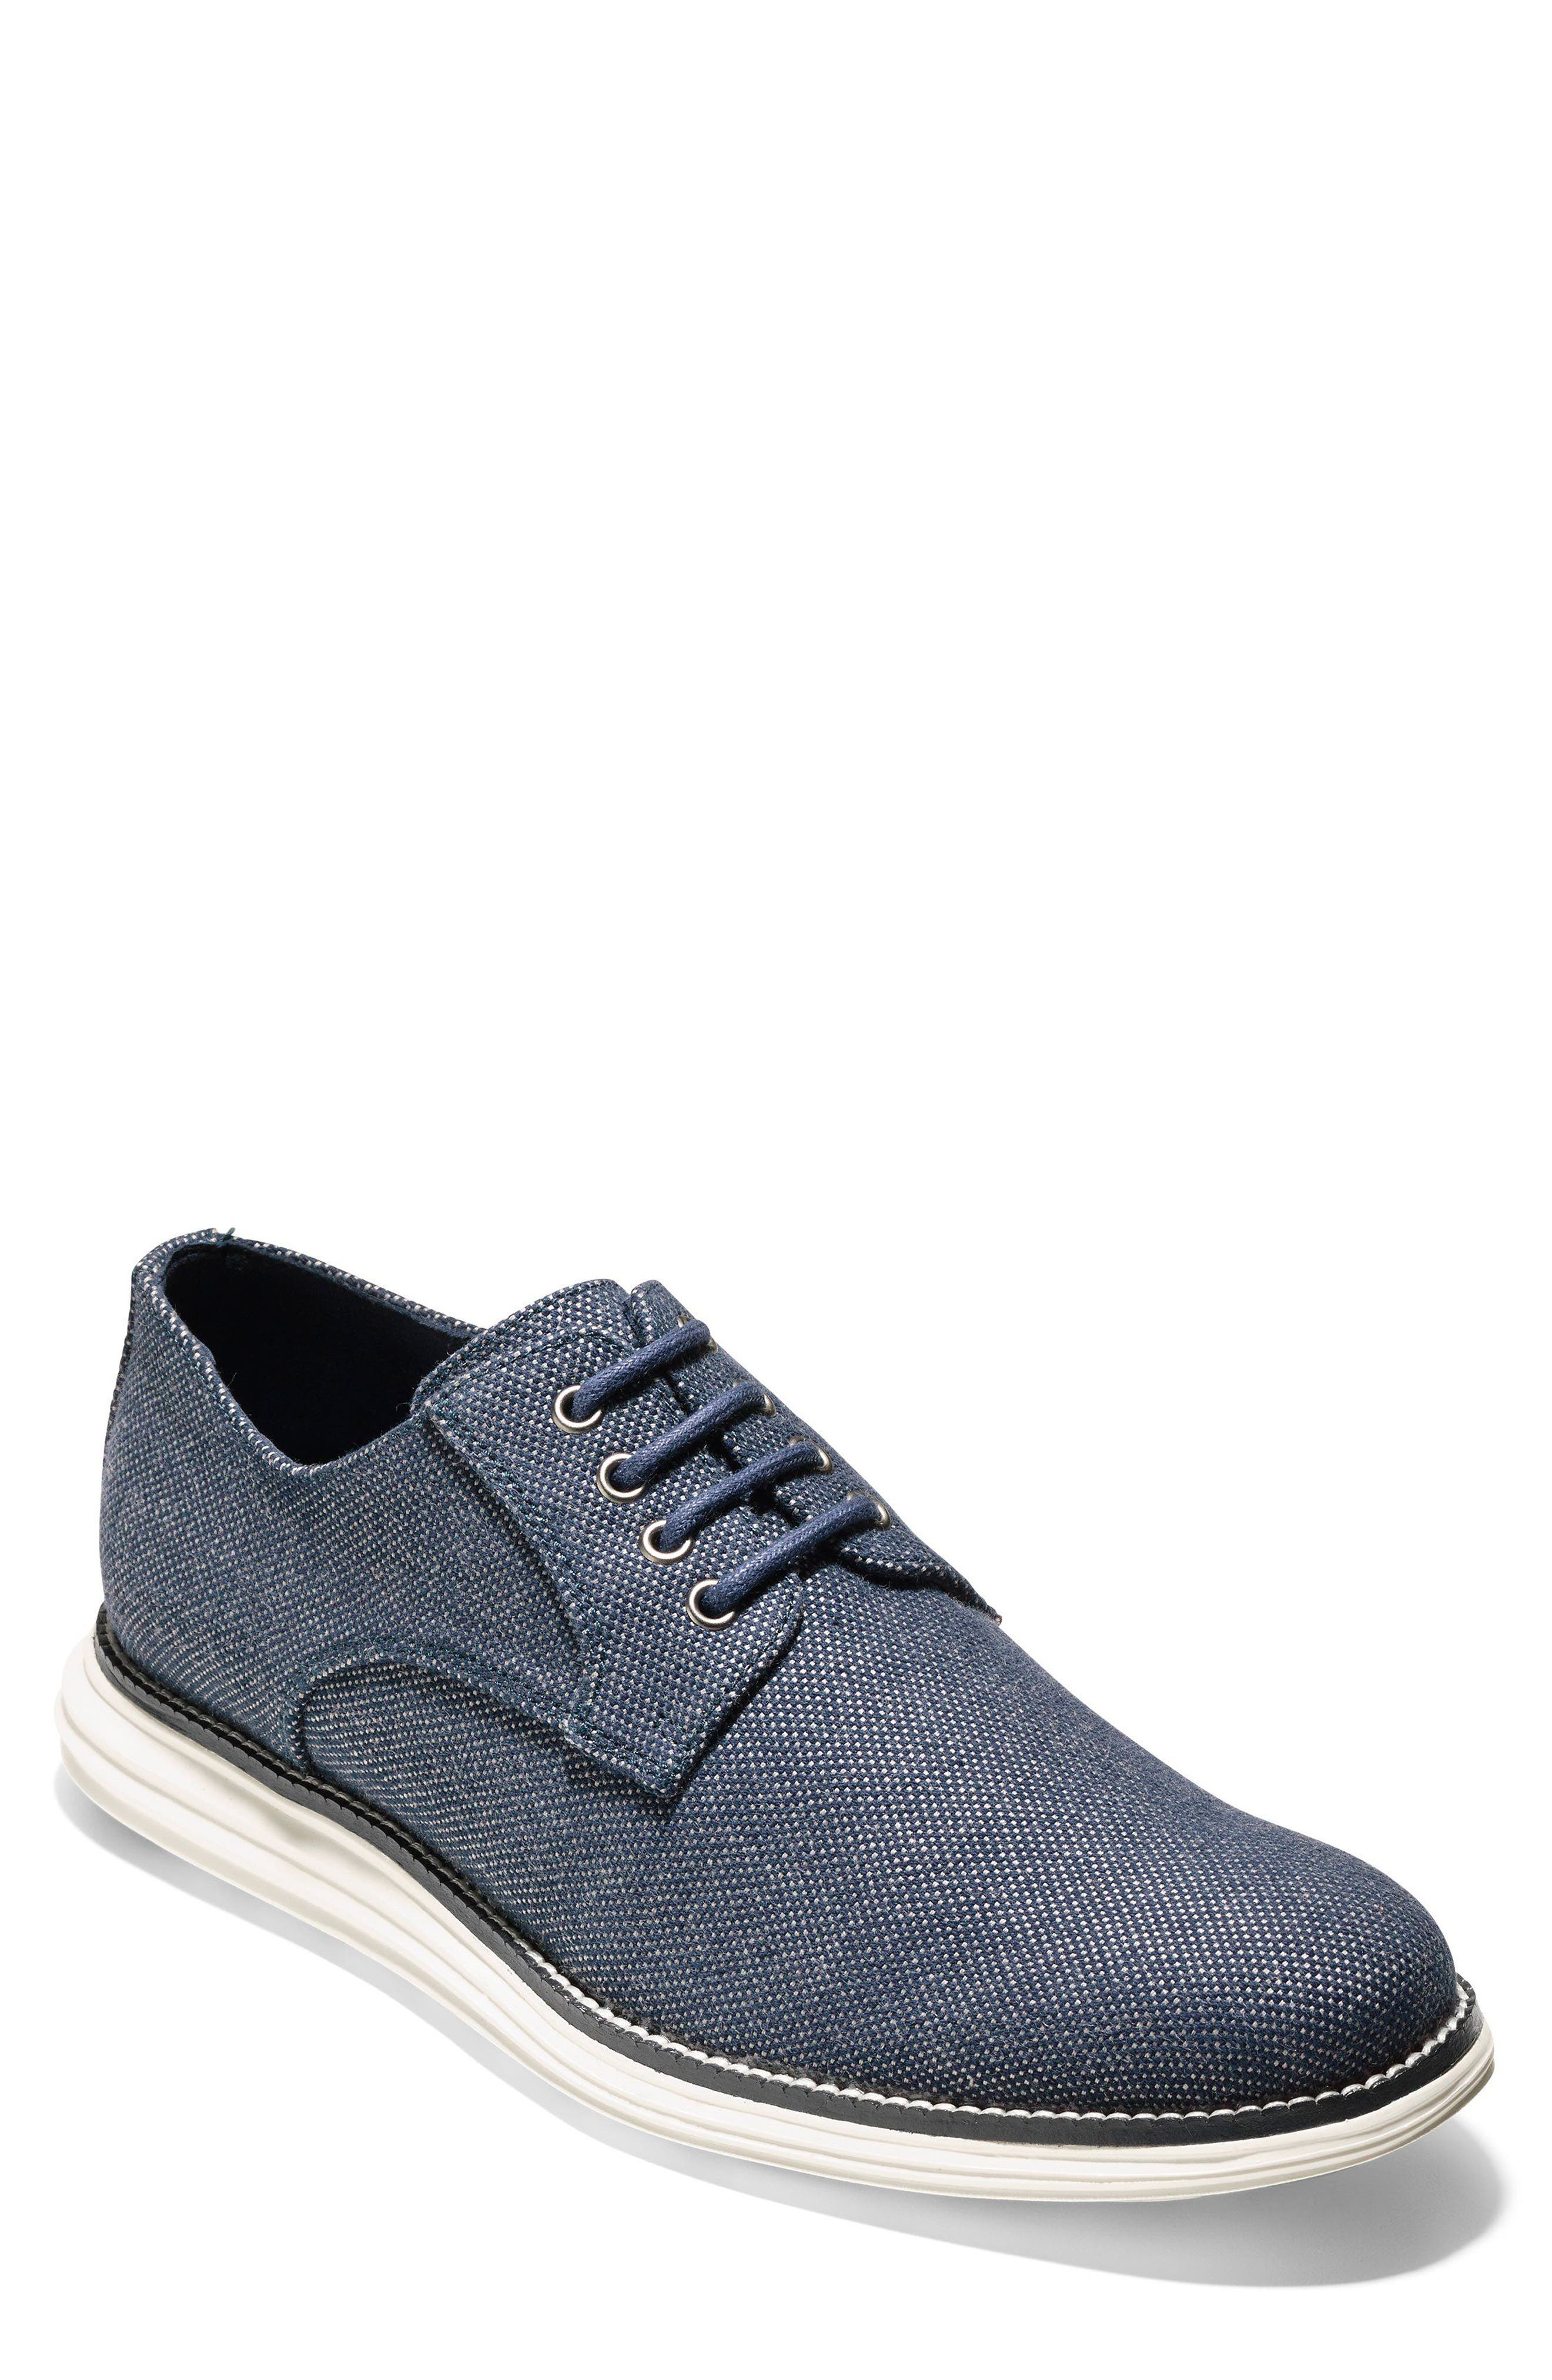 Cole Haan Original Grand Plain Toe Derby (Men)